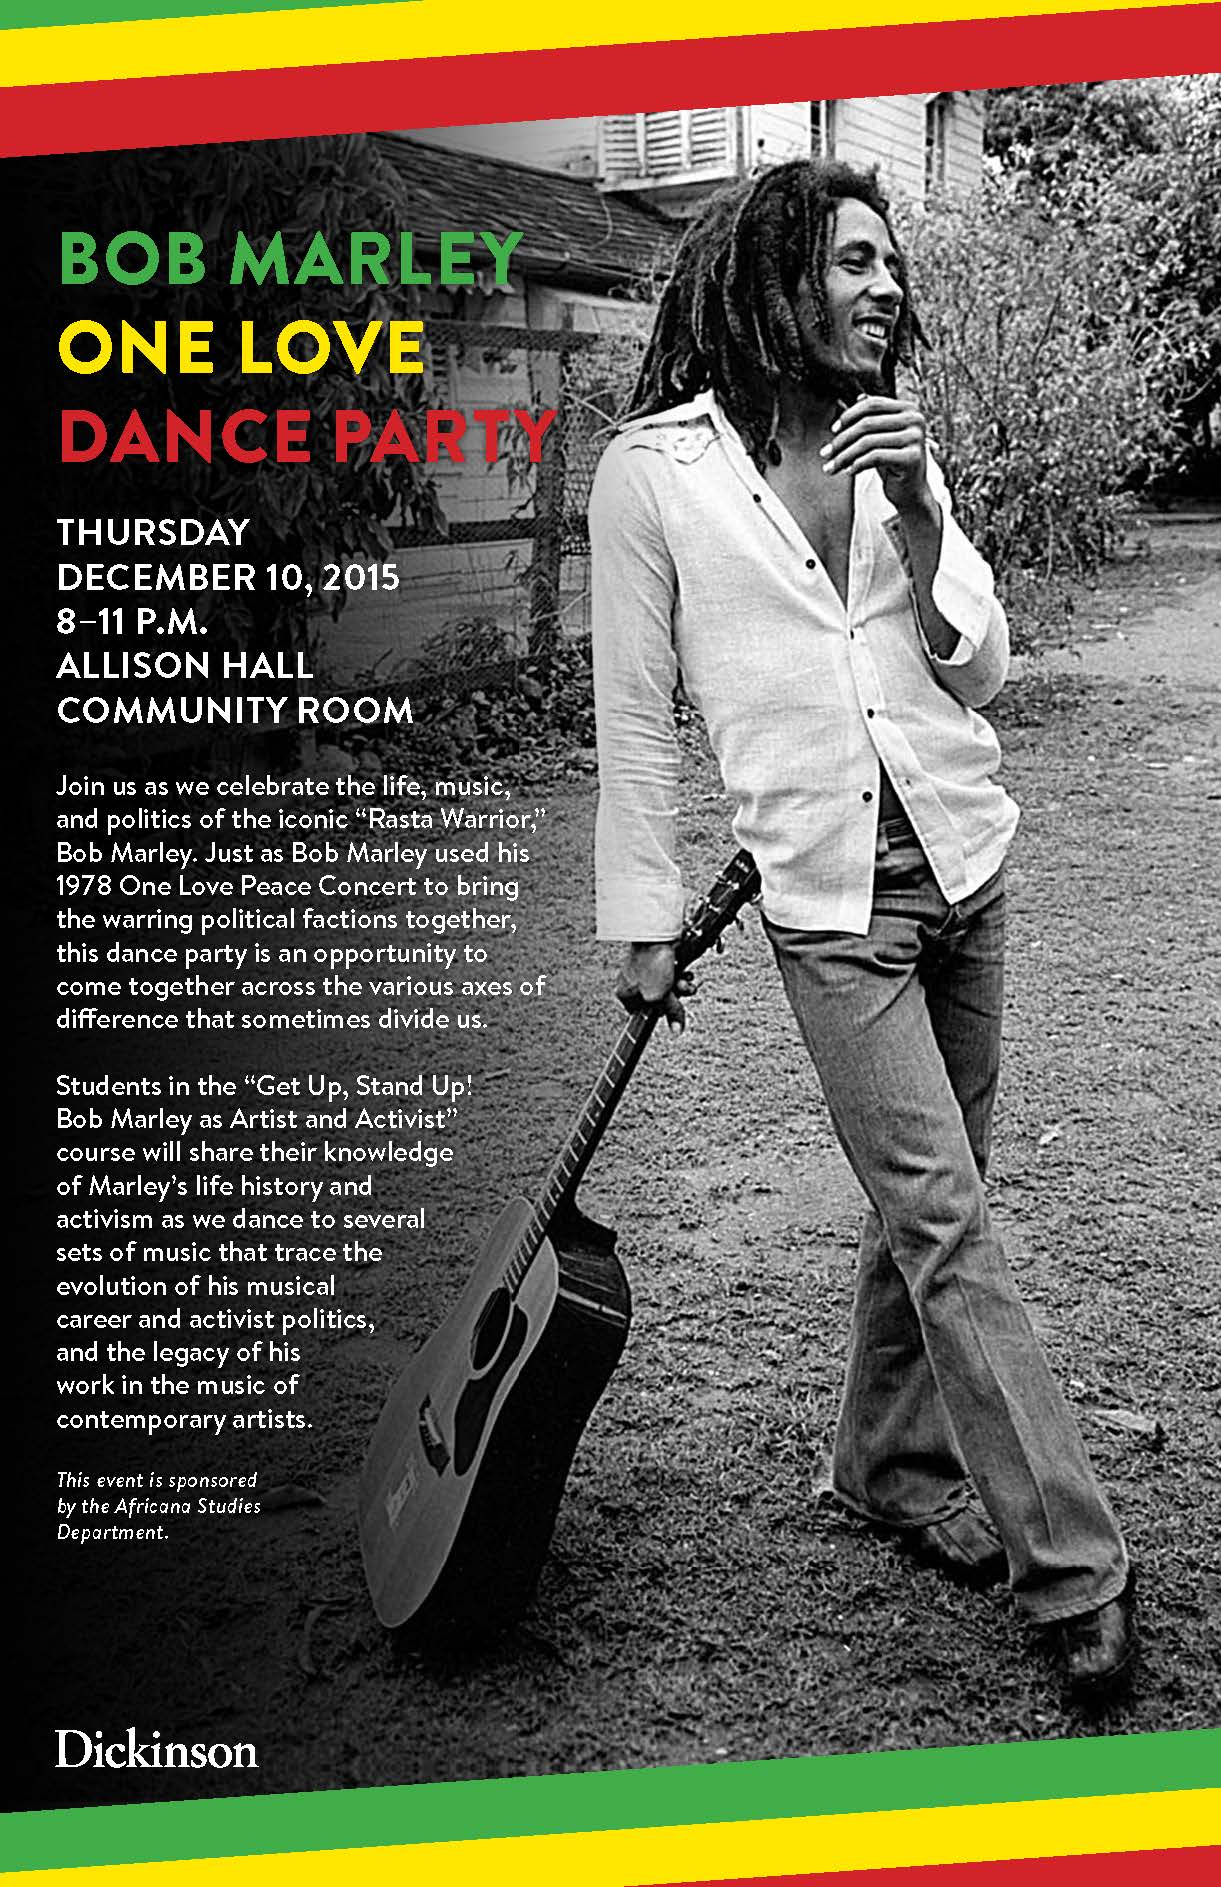 Bob Marley One Love Party Poster